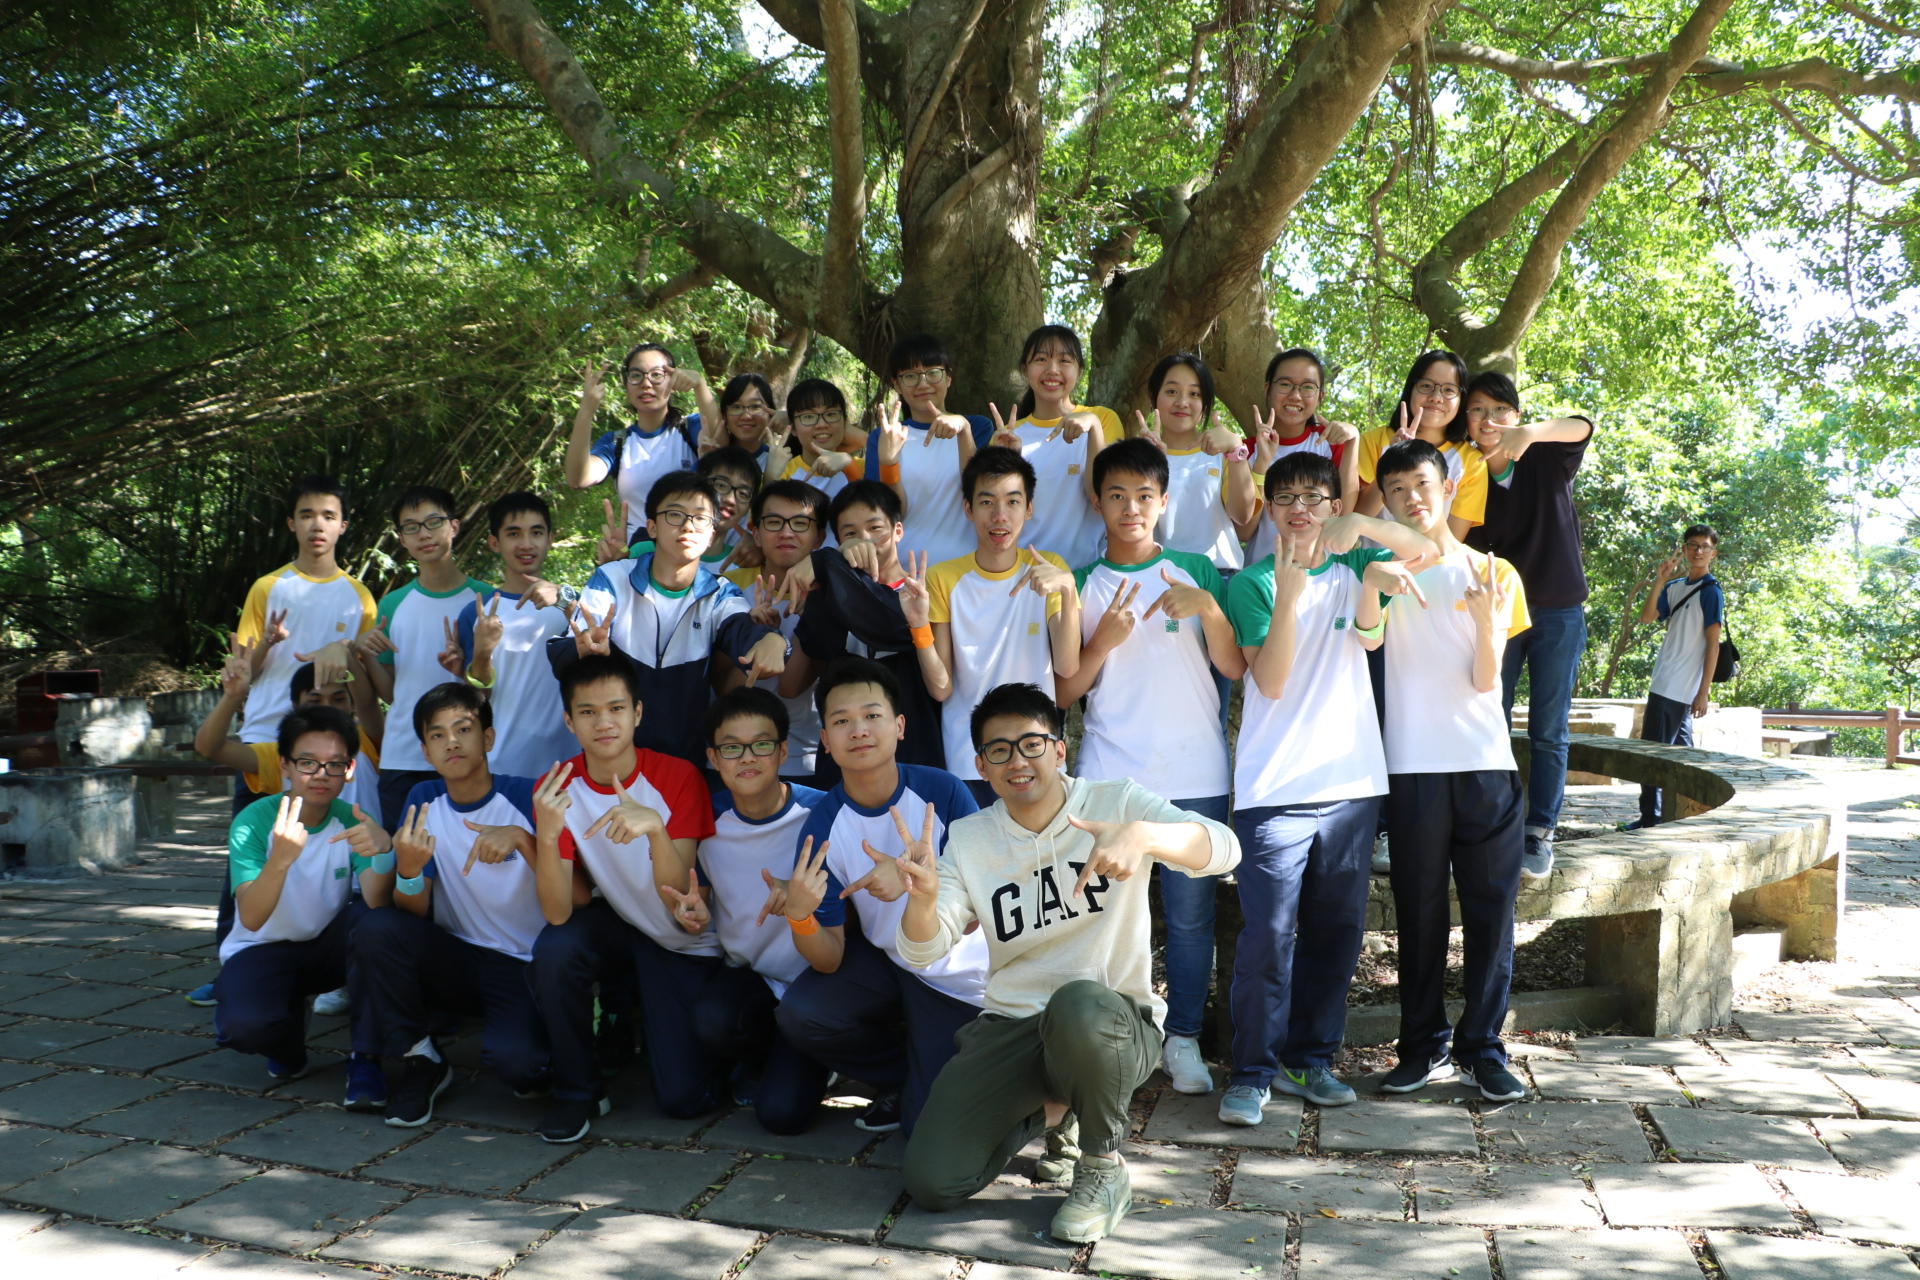 http://npc.edu.hk/sites/default/files/4e_picnic_photo.jpg